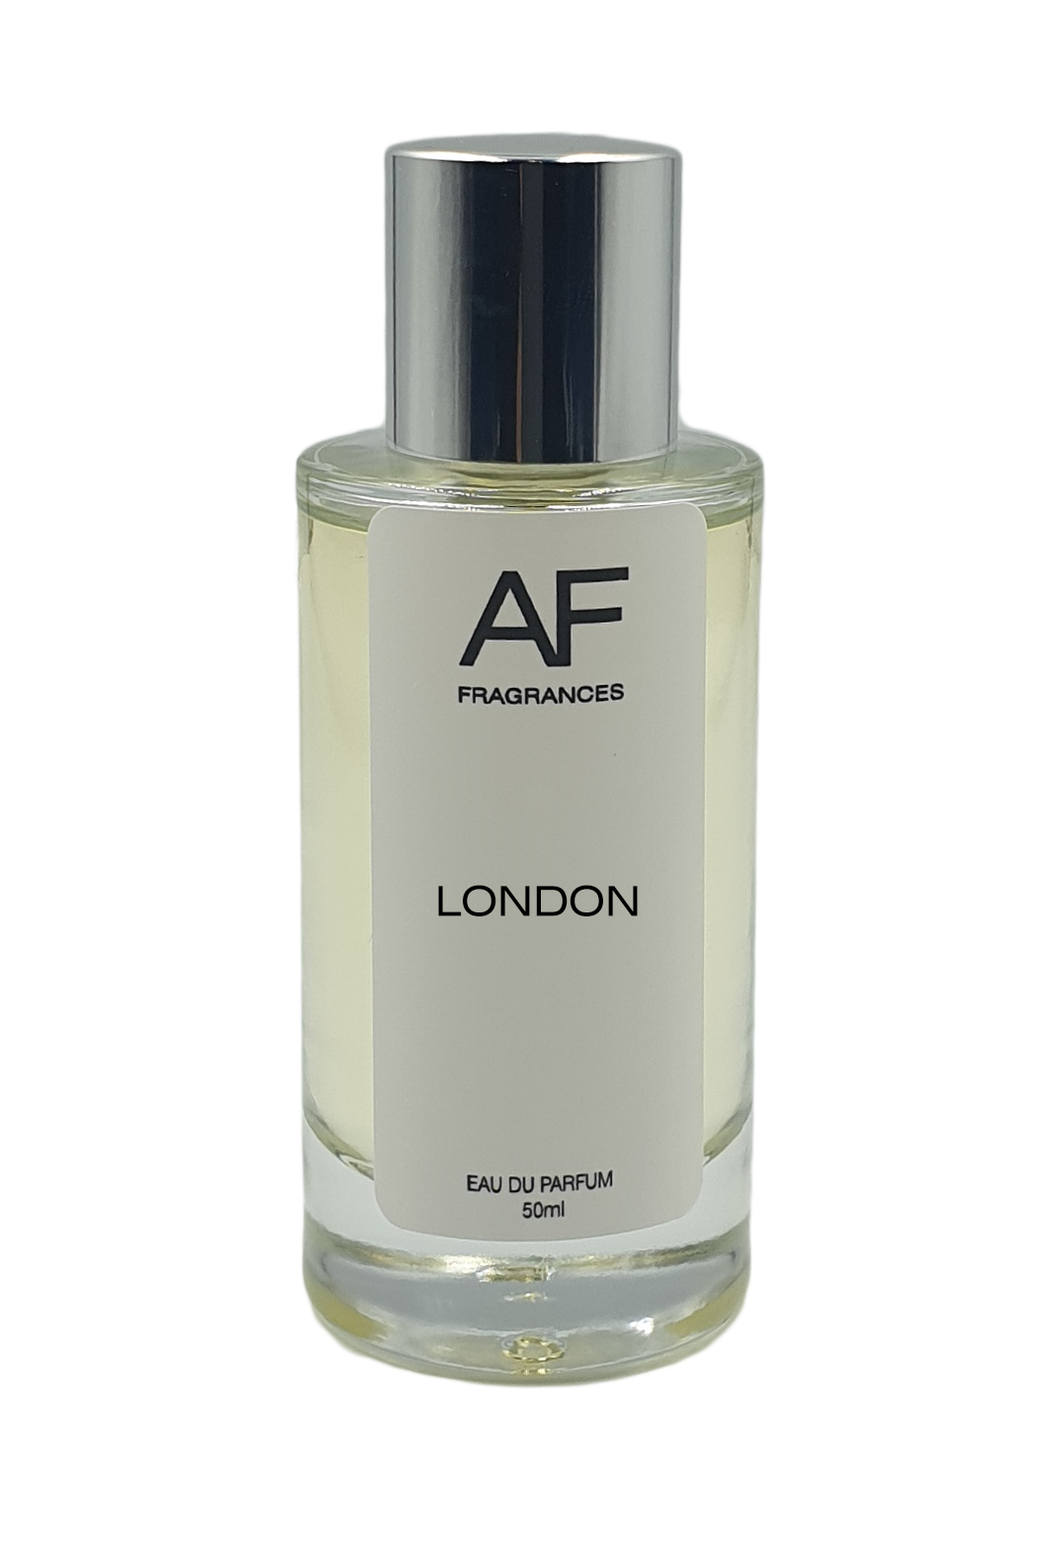 London - AF Fragrances